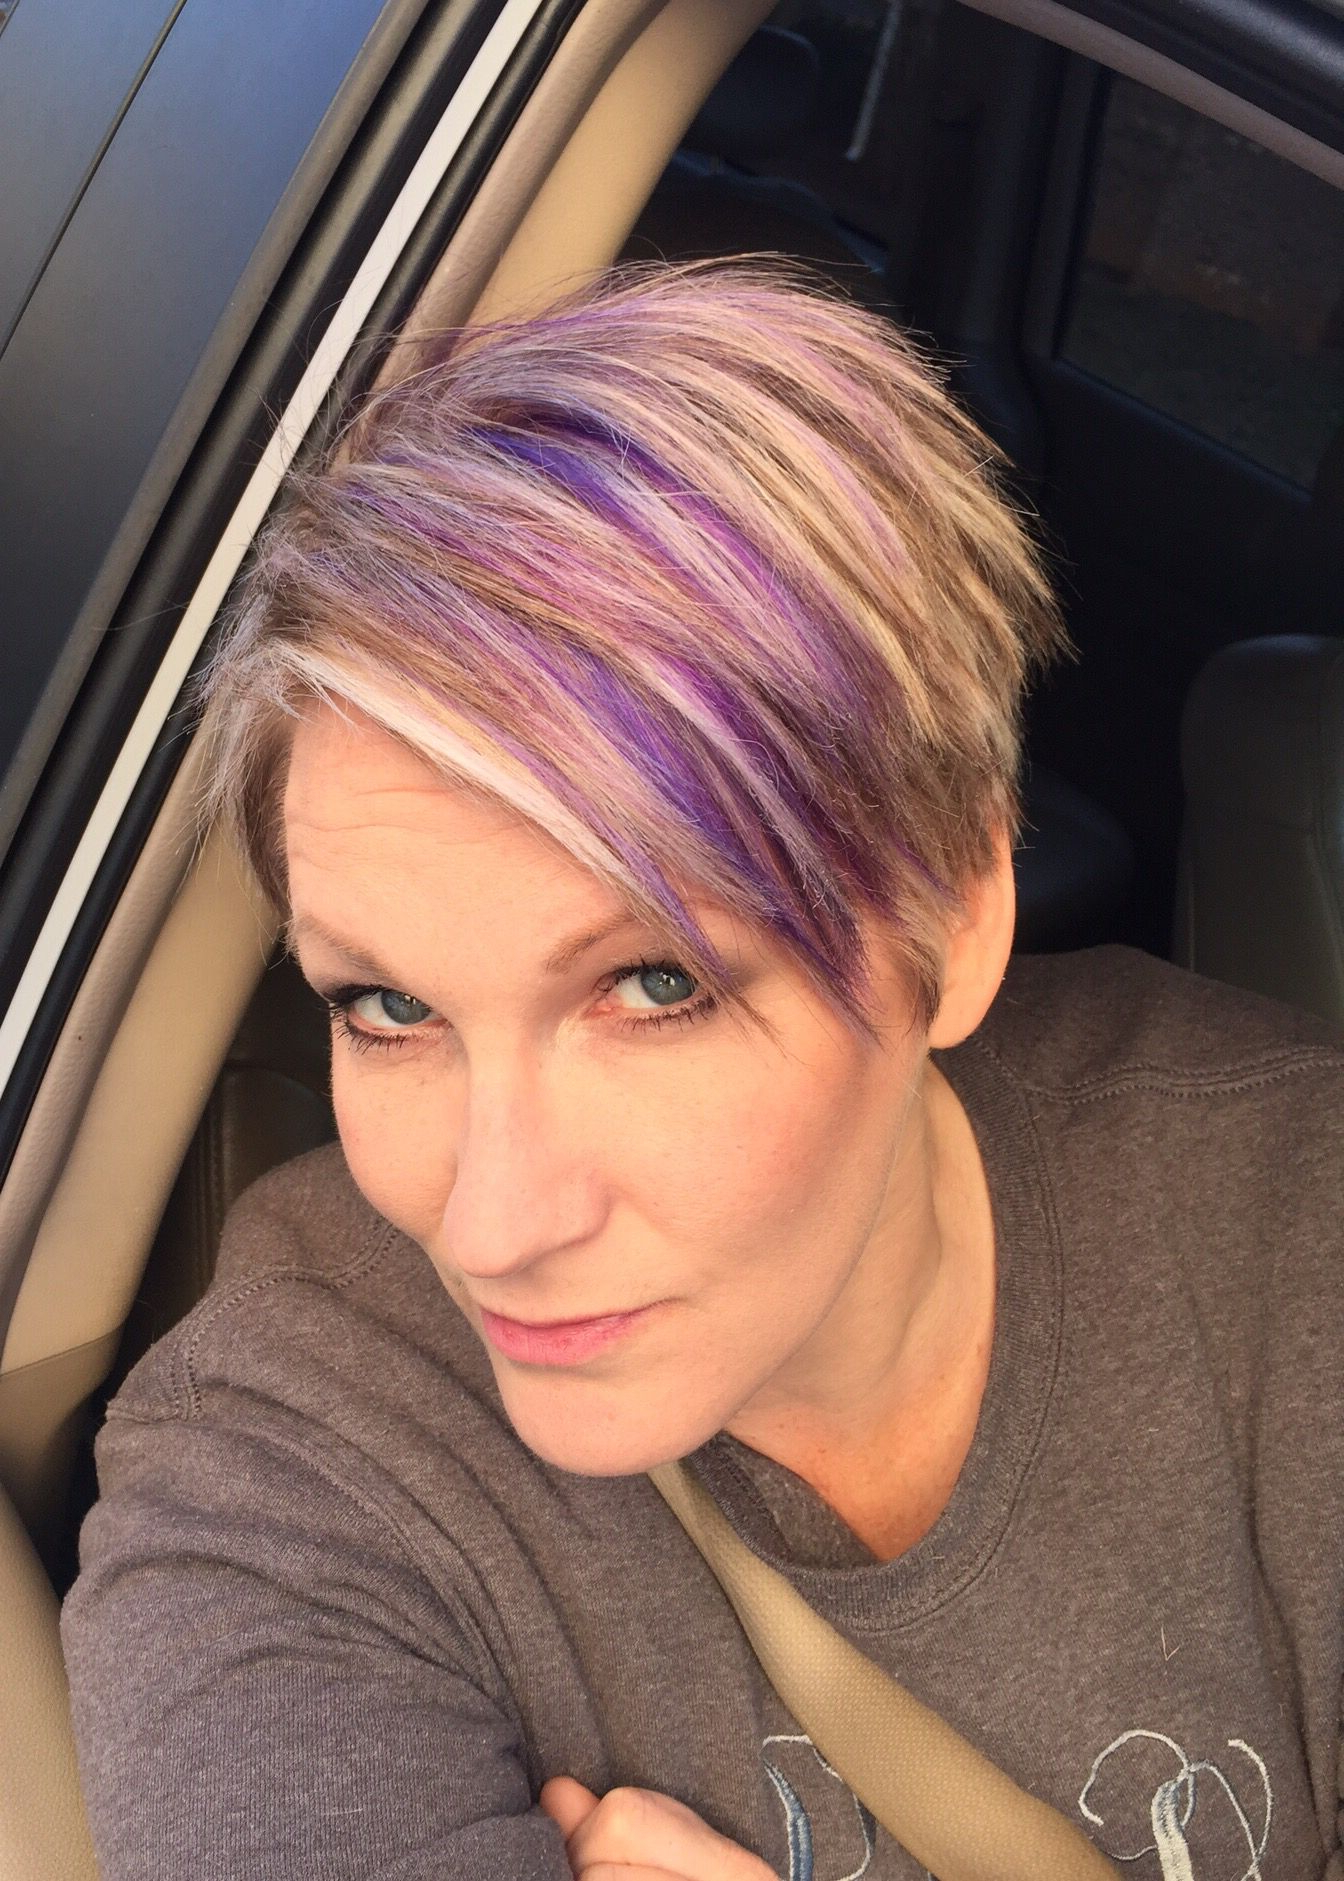 Blonde Pixie Haircut With Purple And Fuchsia Highlights! Spring Is Pertaining To Edgy Purple Tinted Pixie Haircuts (View 15 of 20)